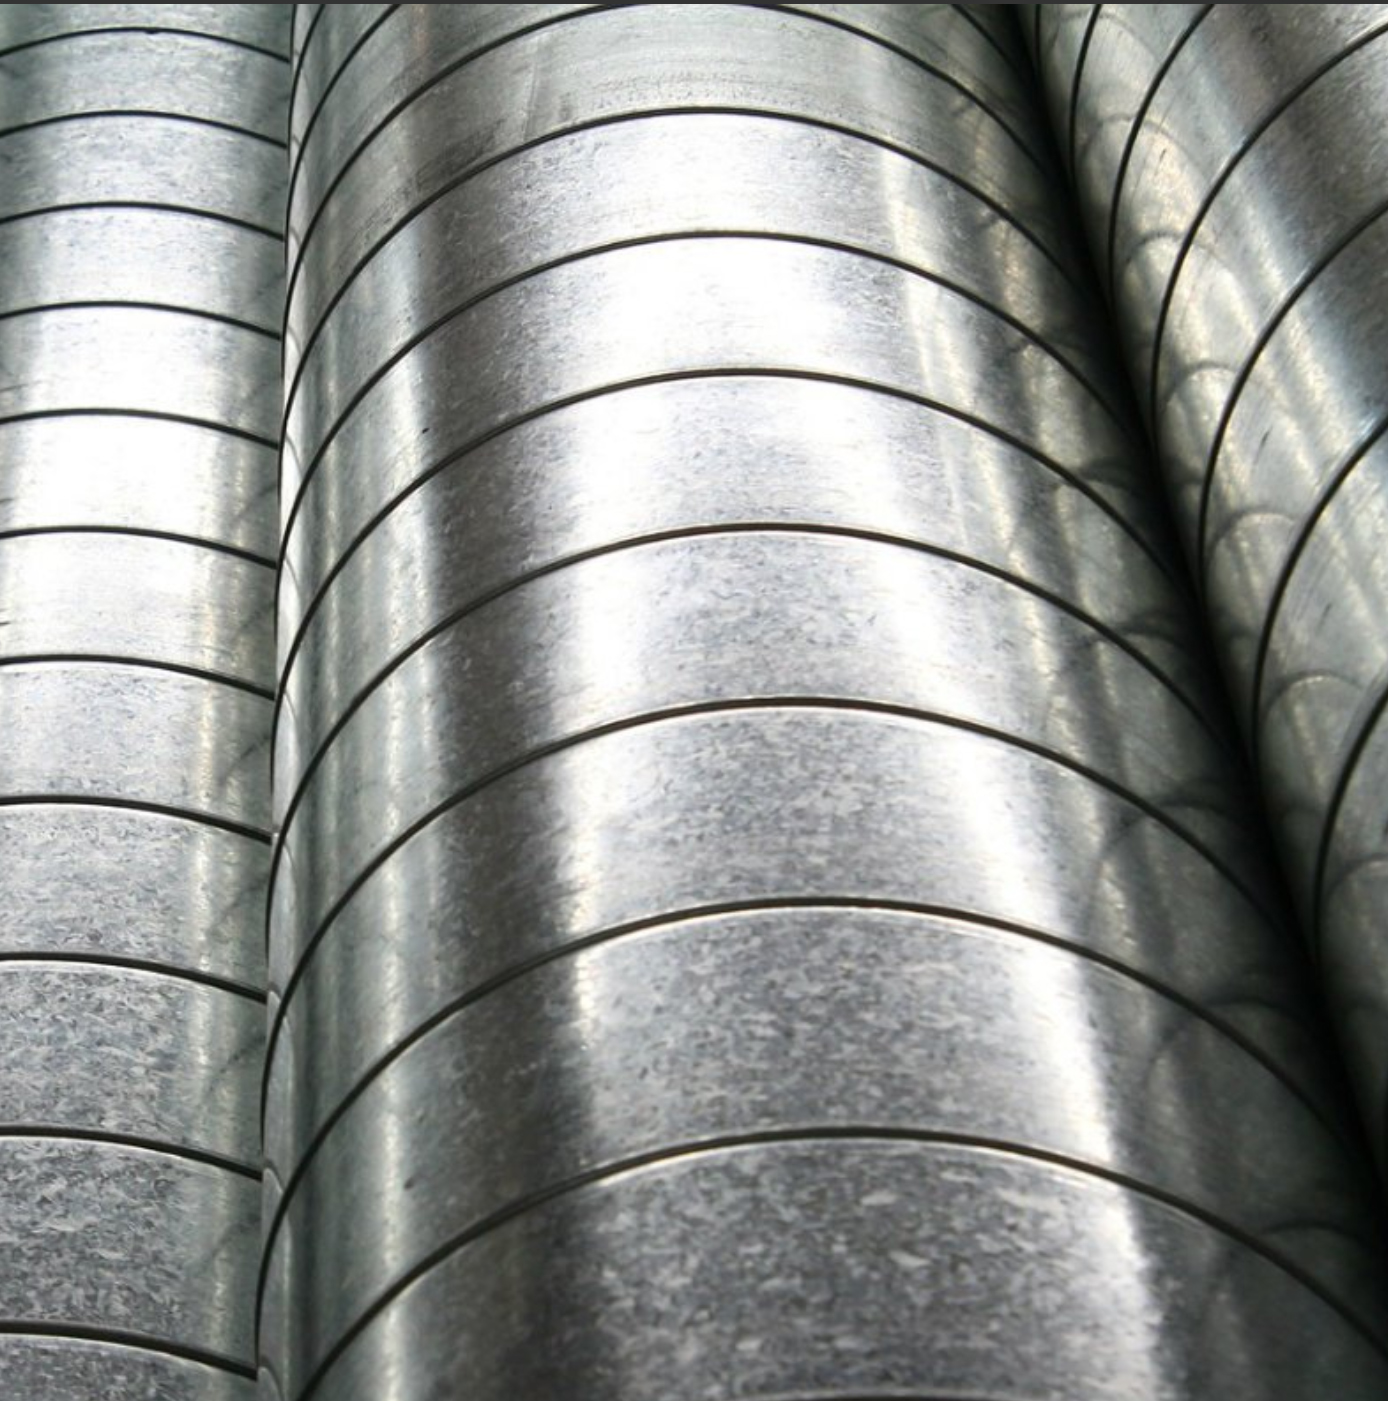 Don't convert to refrigerated air and get duct board. Get sheet metal duct work.